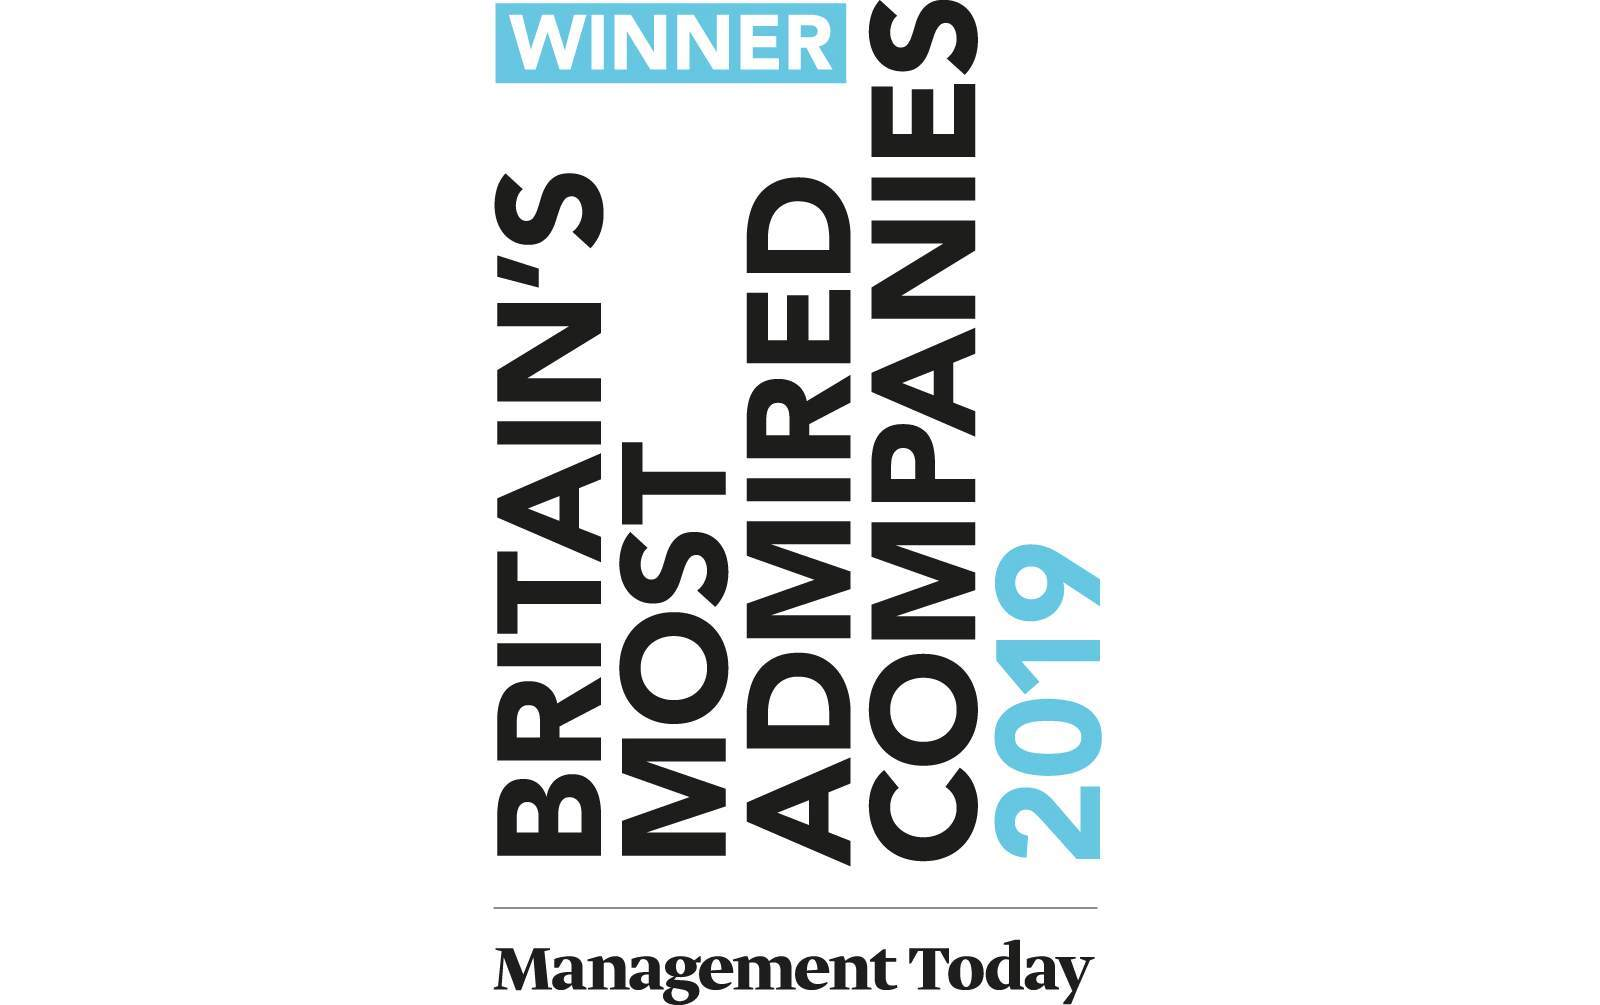 Britain's Most Admired Company